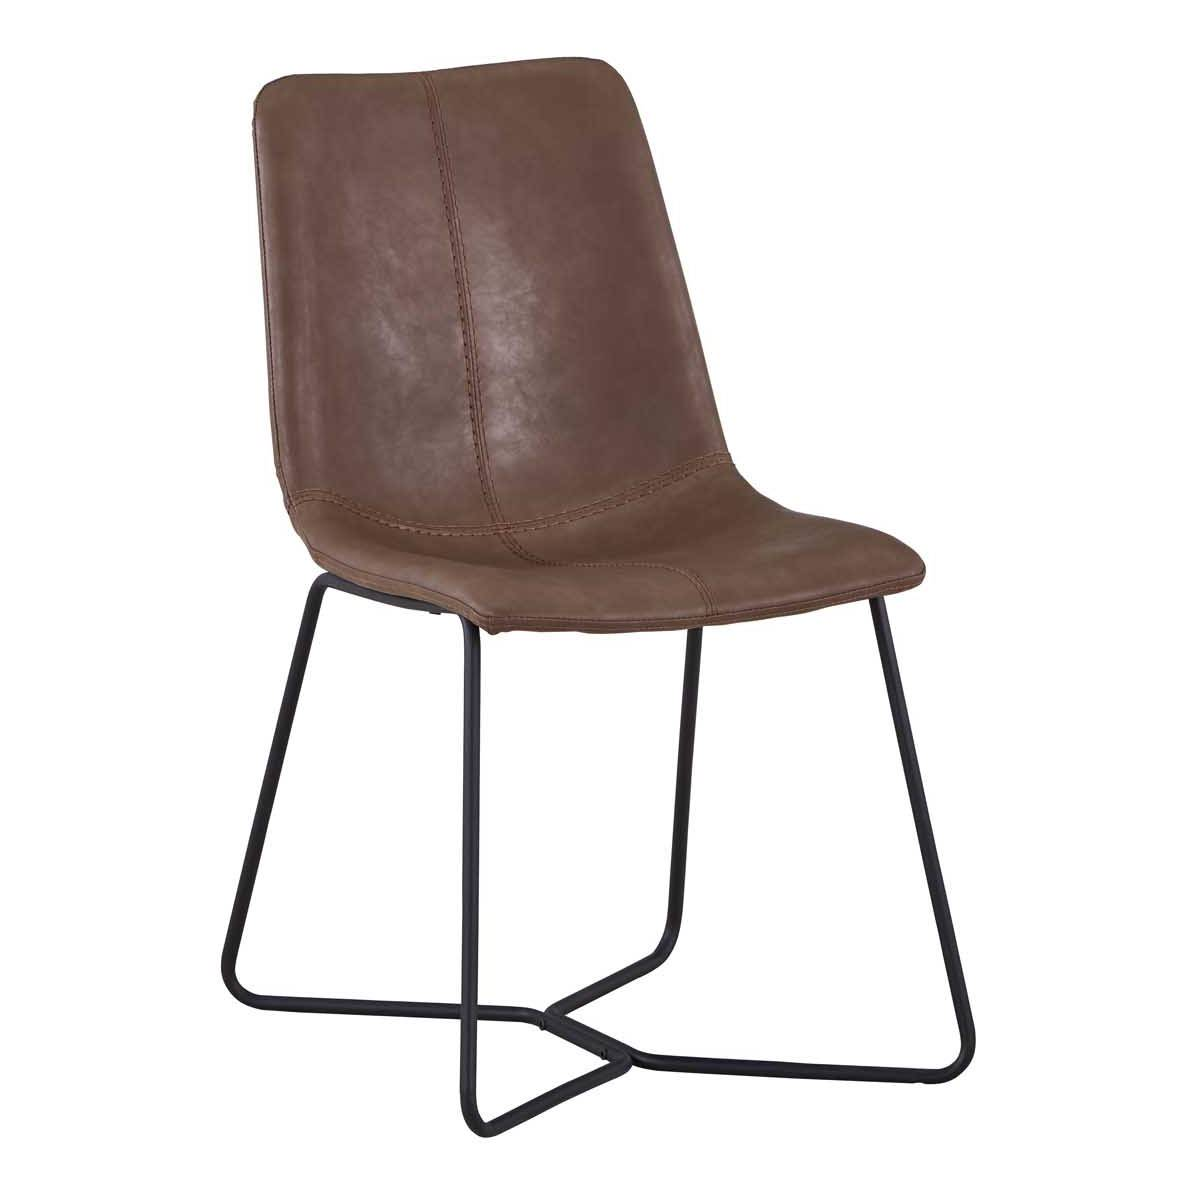 Forster PU Leather Dining Chair, Brown